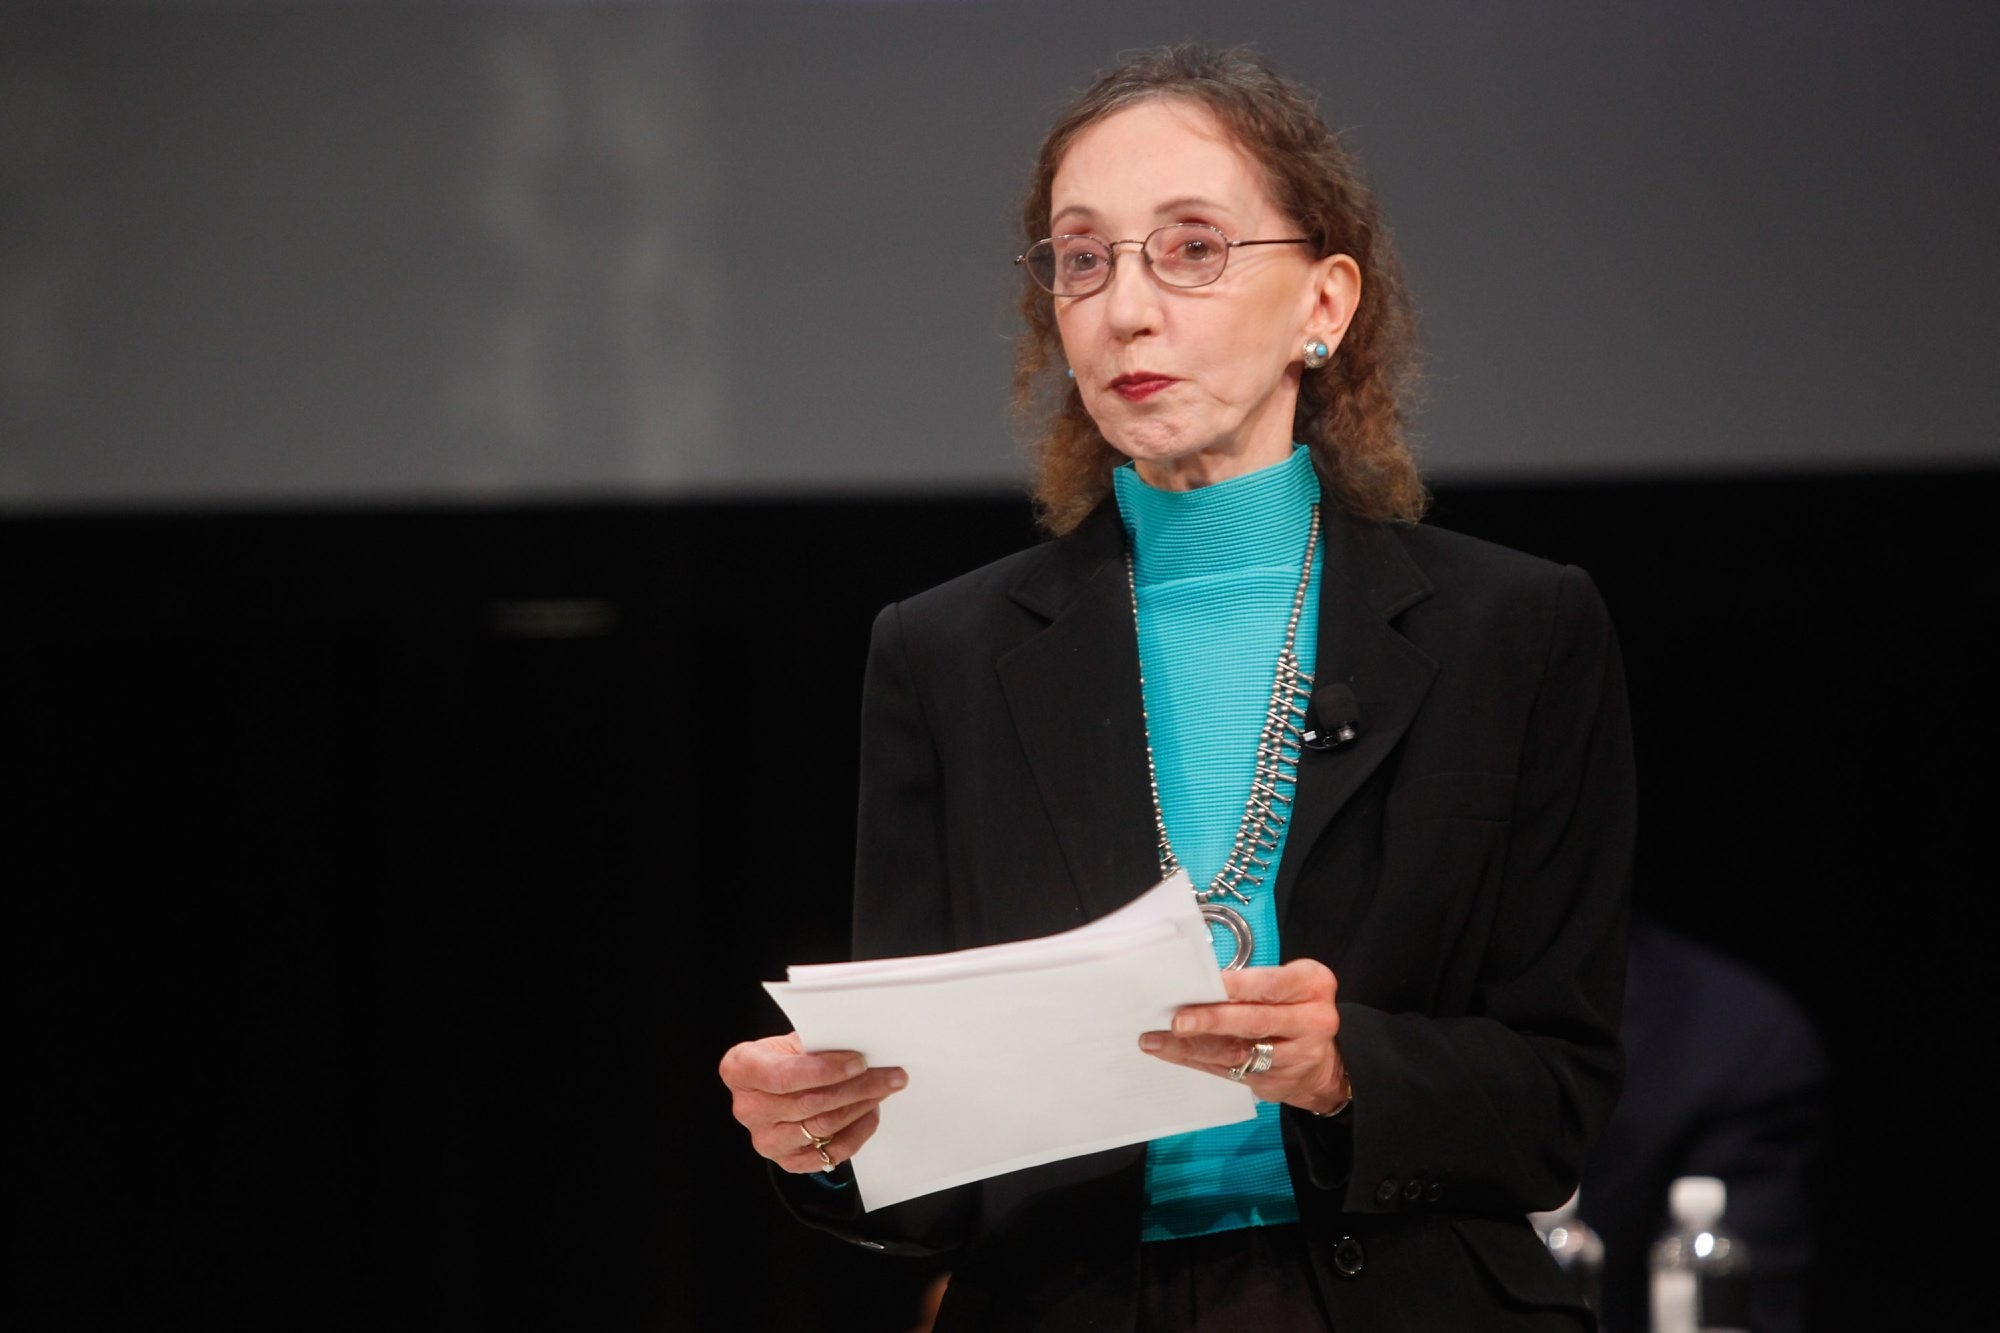 Joyce Carol Oates will make an appearance at the David A. Howe Public Library in Wellsville. (Getty Images)